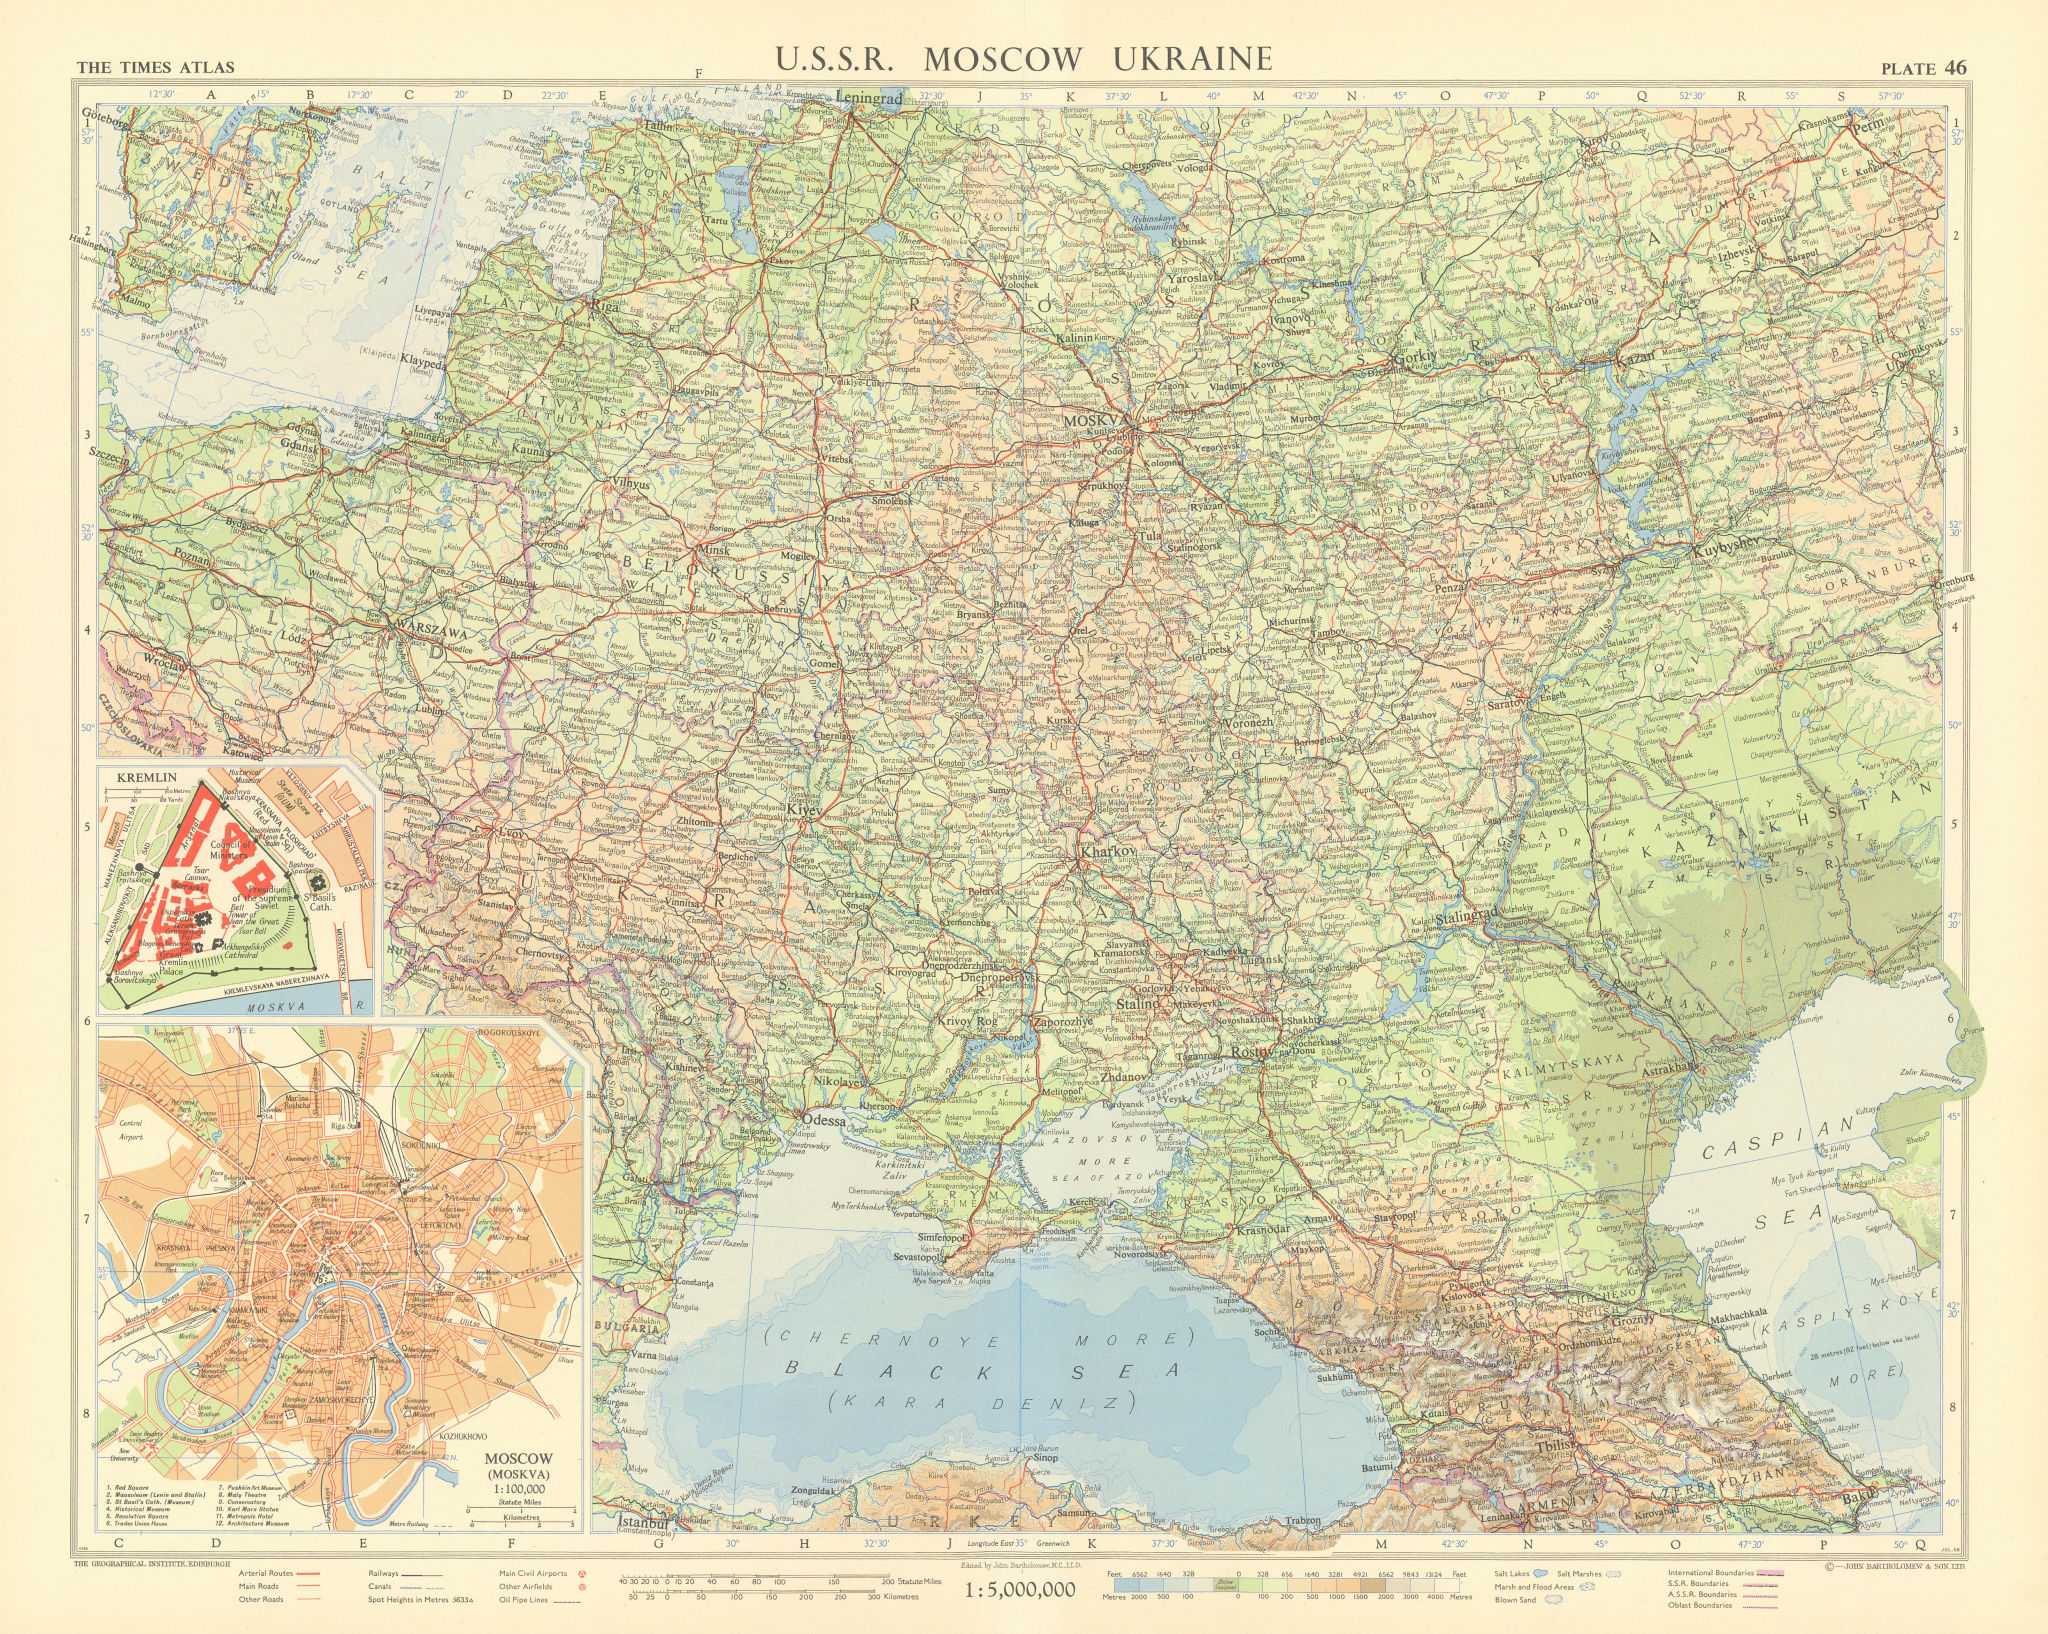 Southwest Russia & Ukraine. USSR. Moscow & Kremlin plans. TIMES 1959 old map